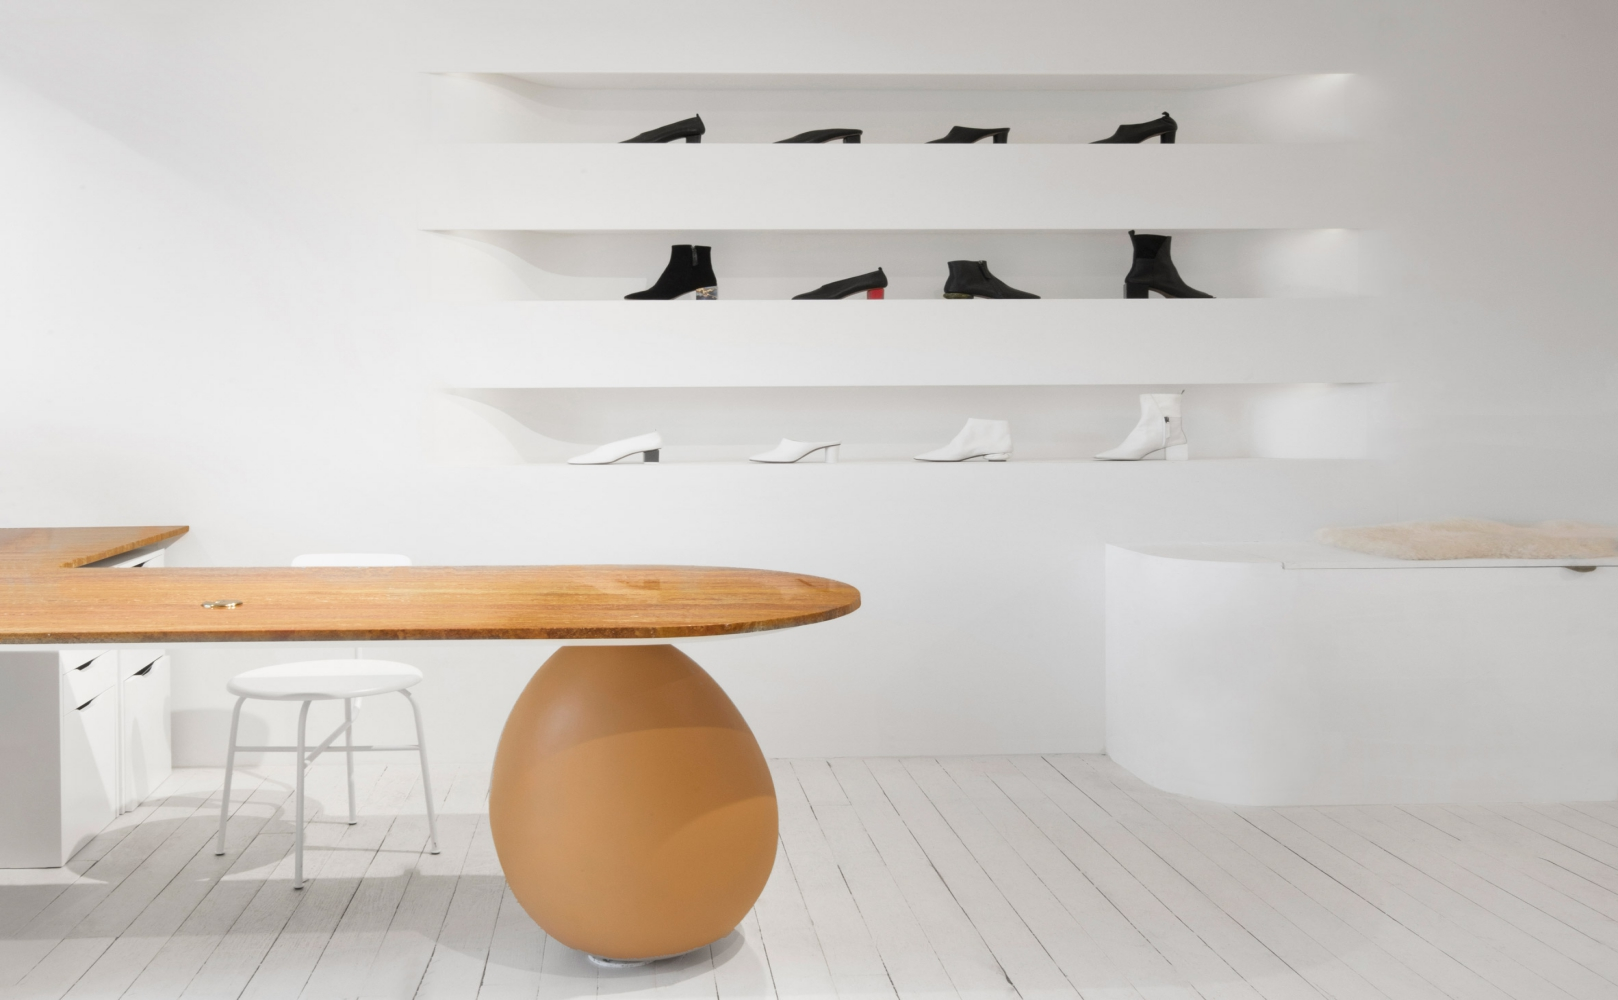 xxgray-matters-showroom-bower-studios-greenpoint-brooklyn-new-york_dezeen_2364_col_6